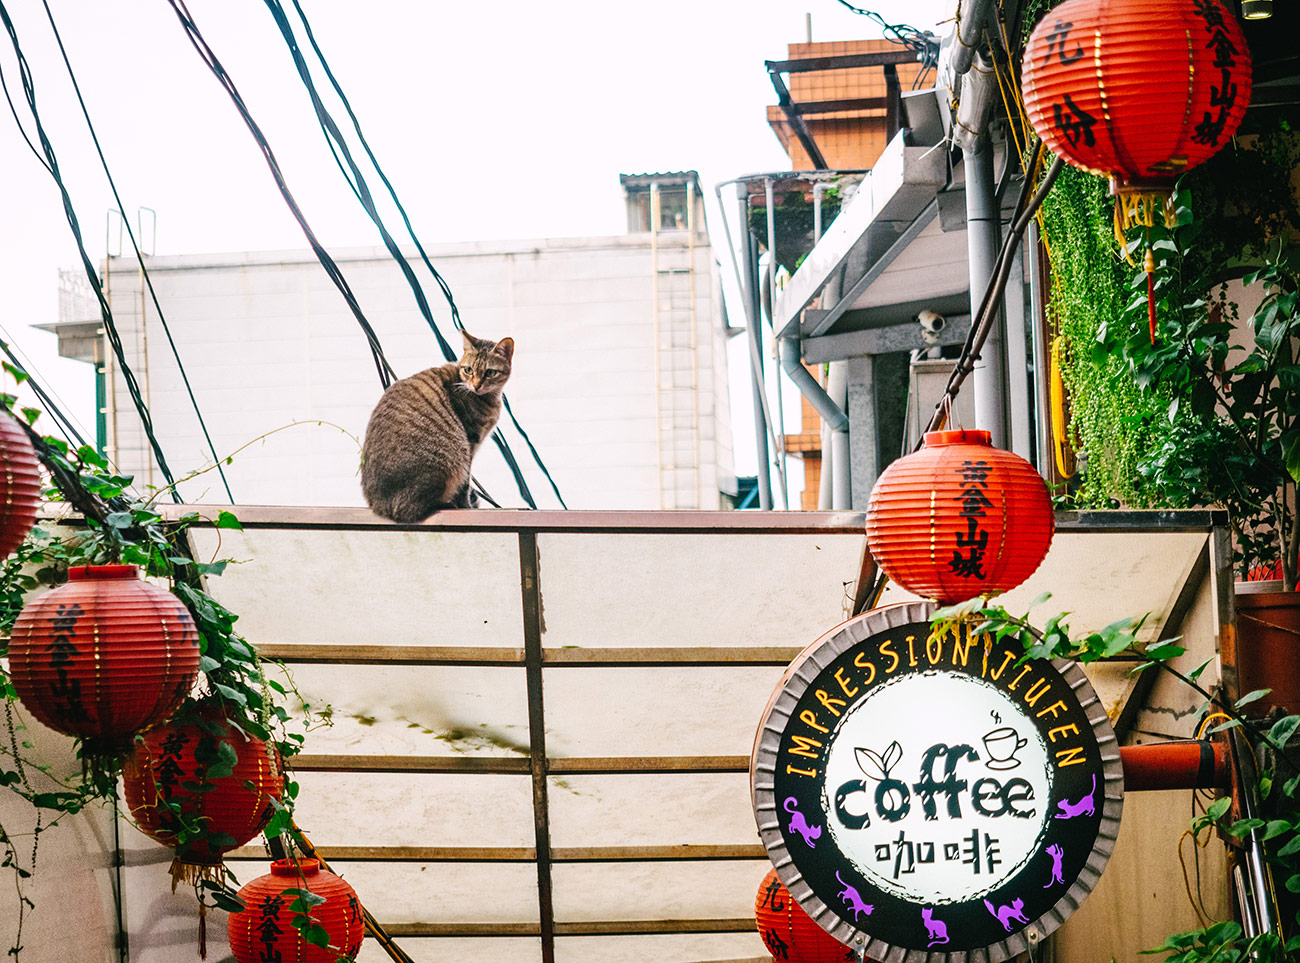 Taipei Jiufen - Cat on the roof